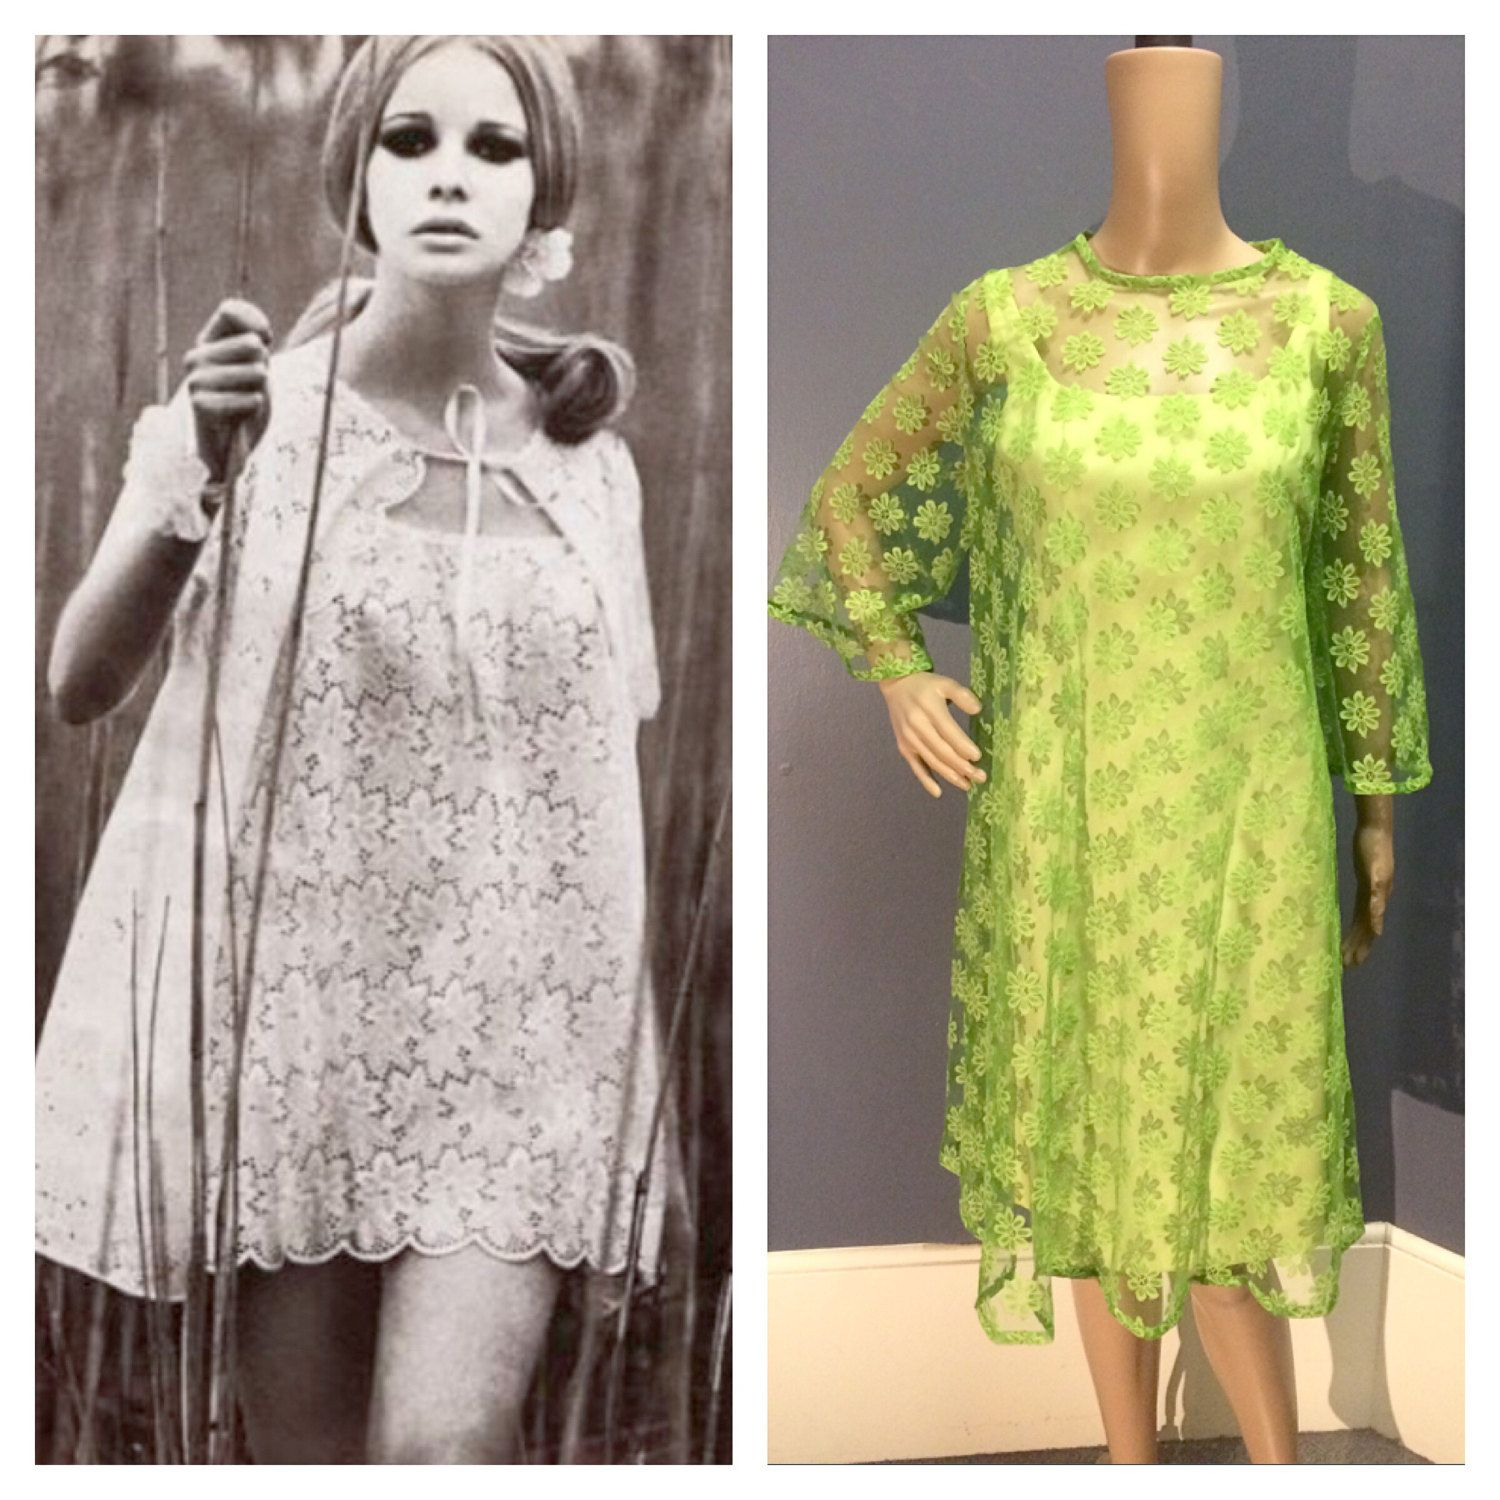 Green dress with lace overlay  DAISY FISHNET LACE us Vintage s Lime Green Wiggle Cocktail